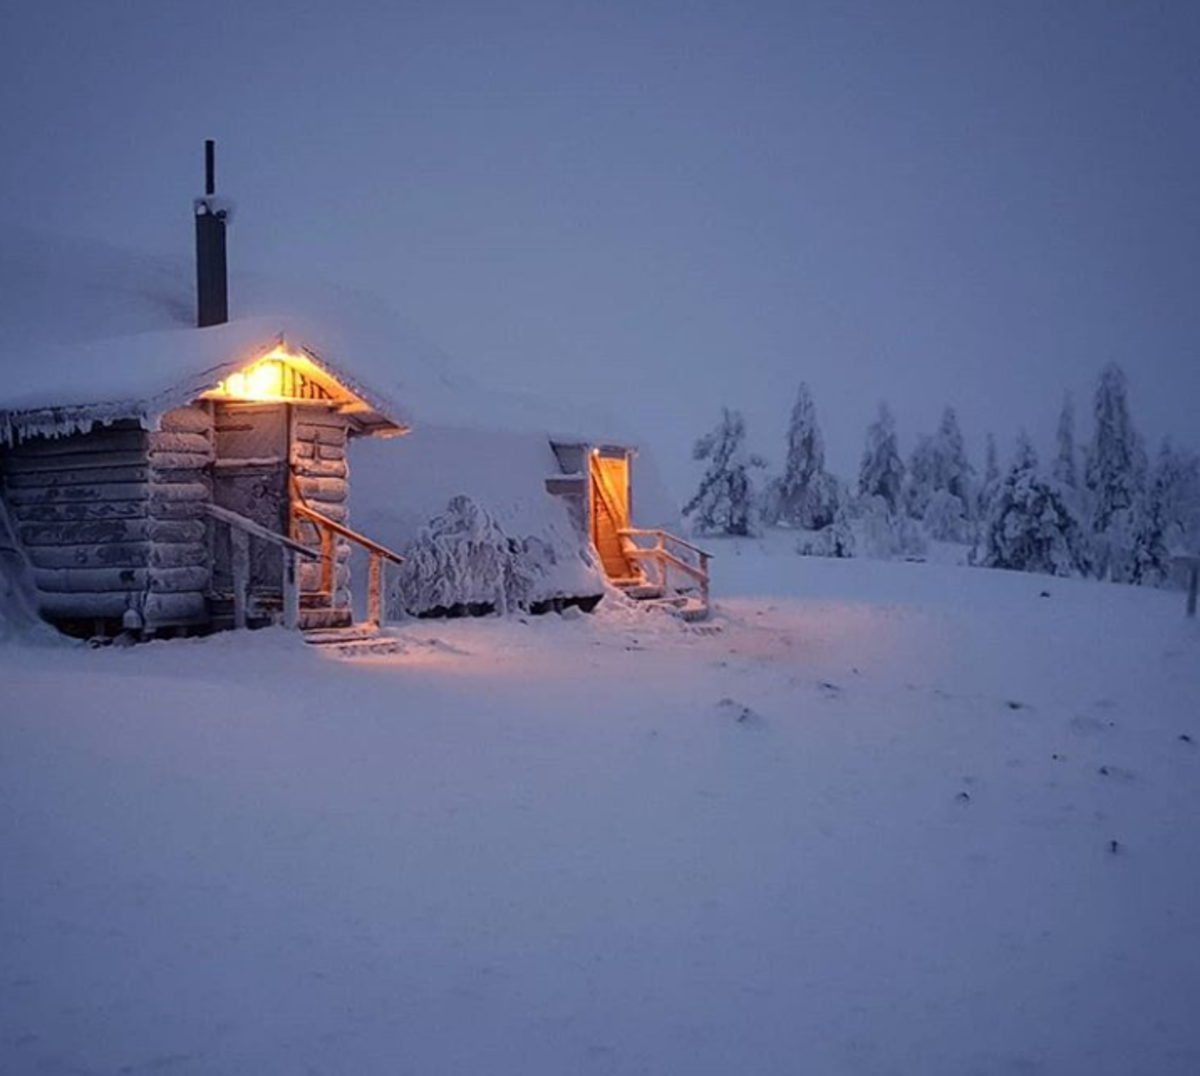 The welcoming visitor's cabin.